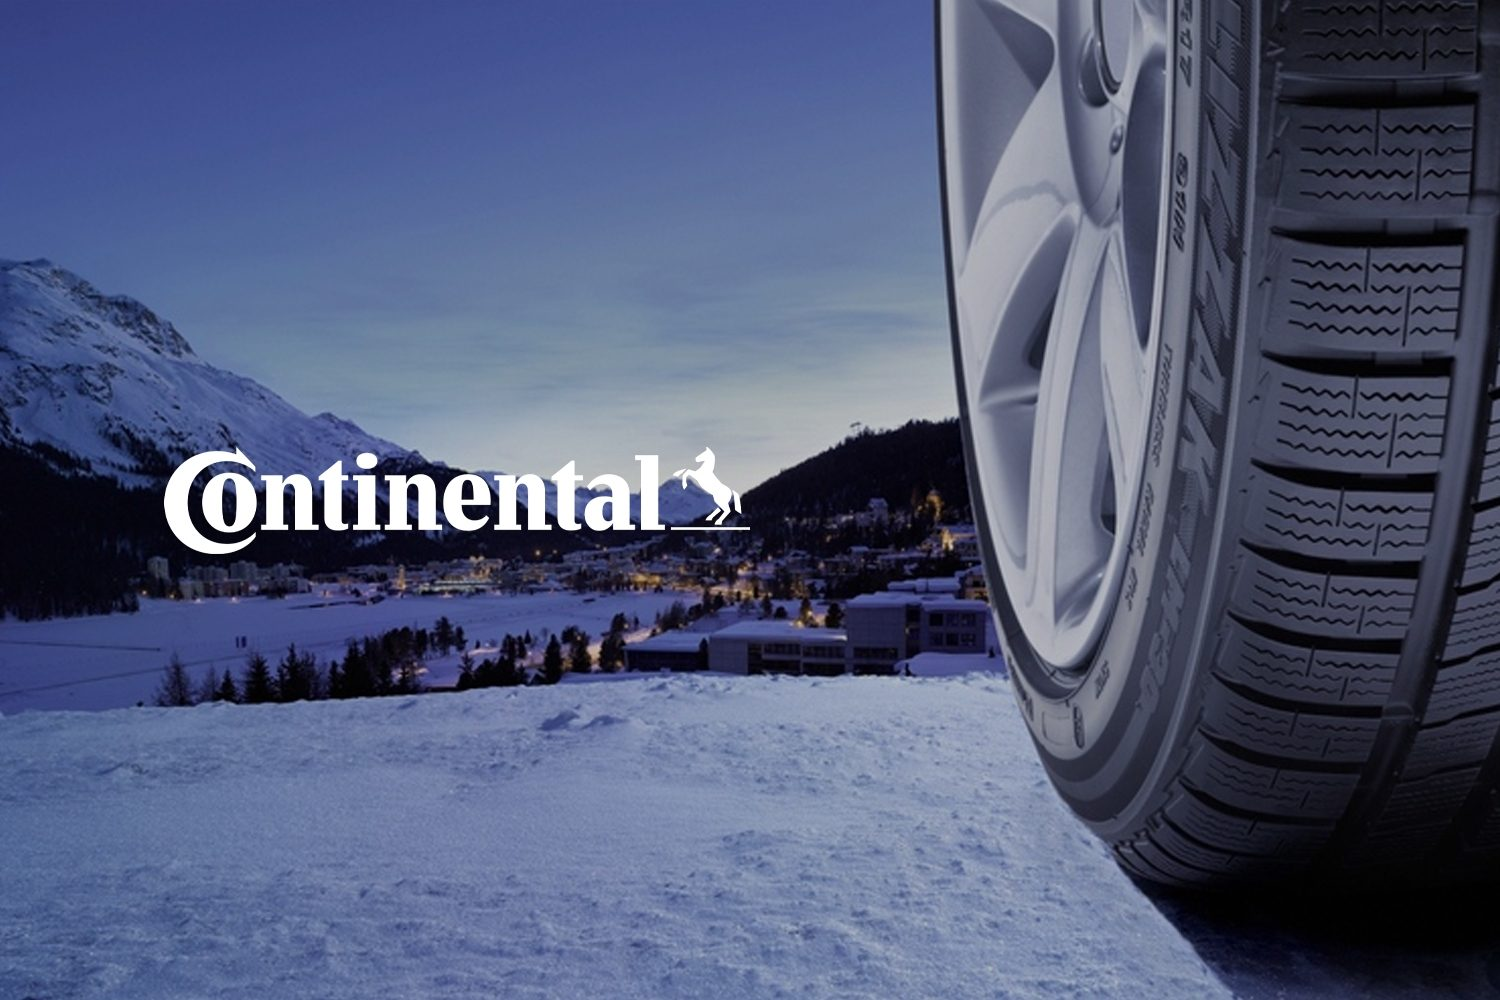 Continental tyres 2.0